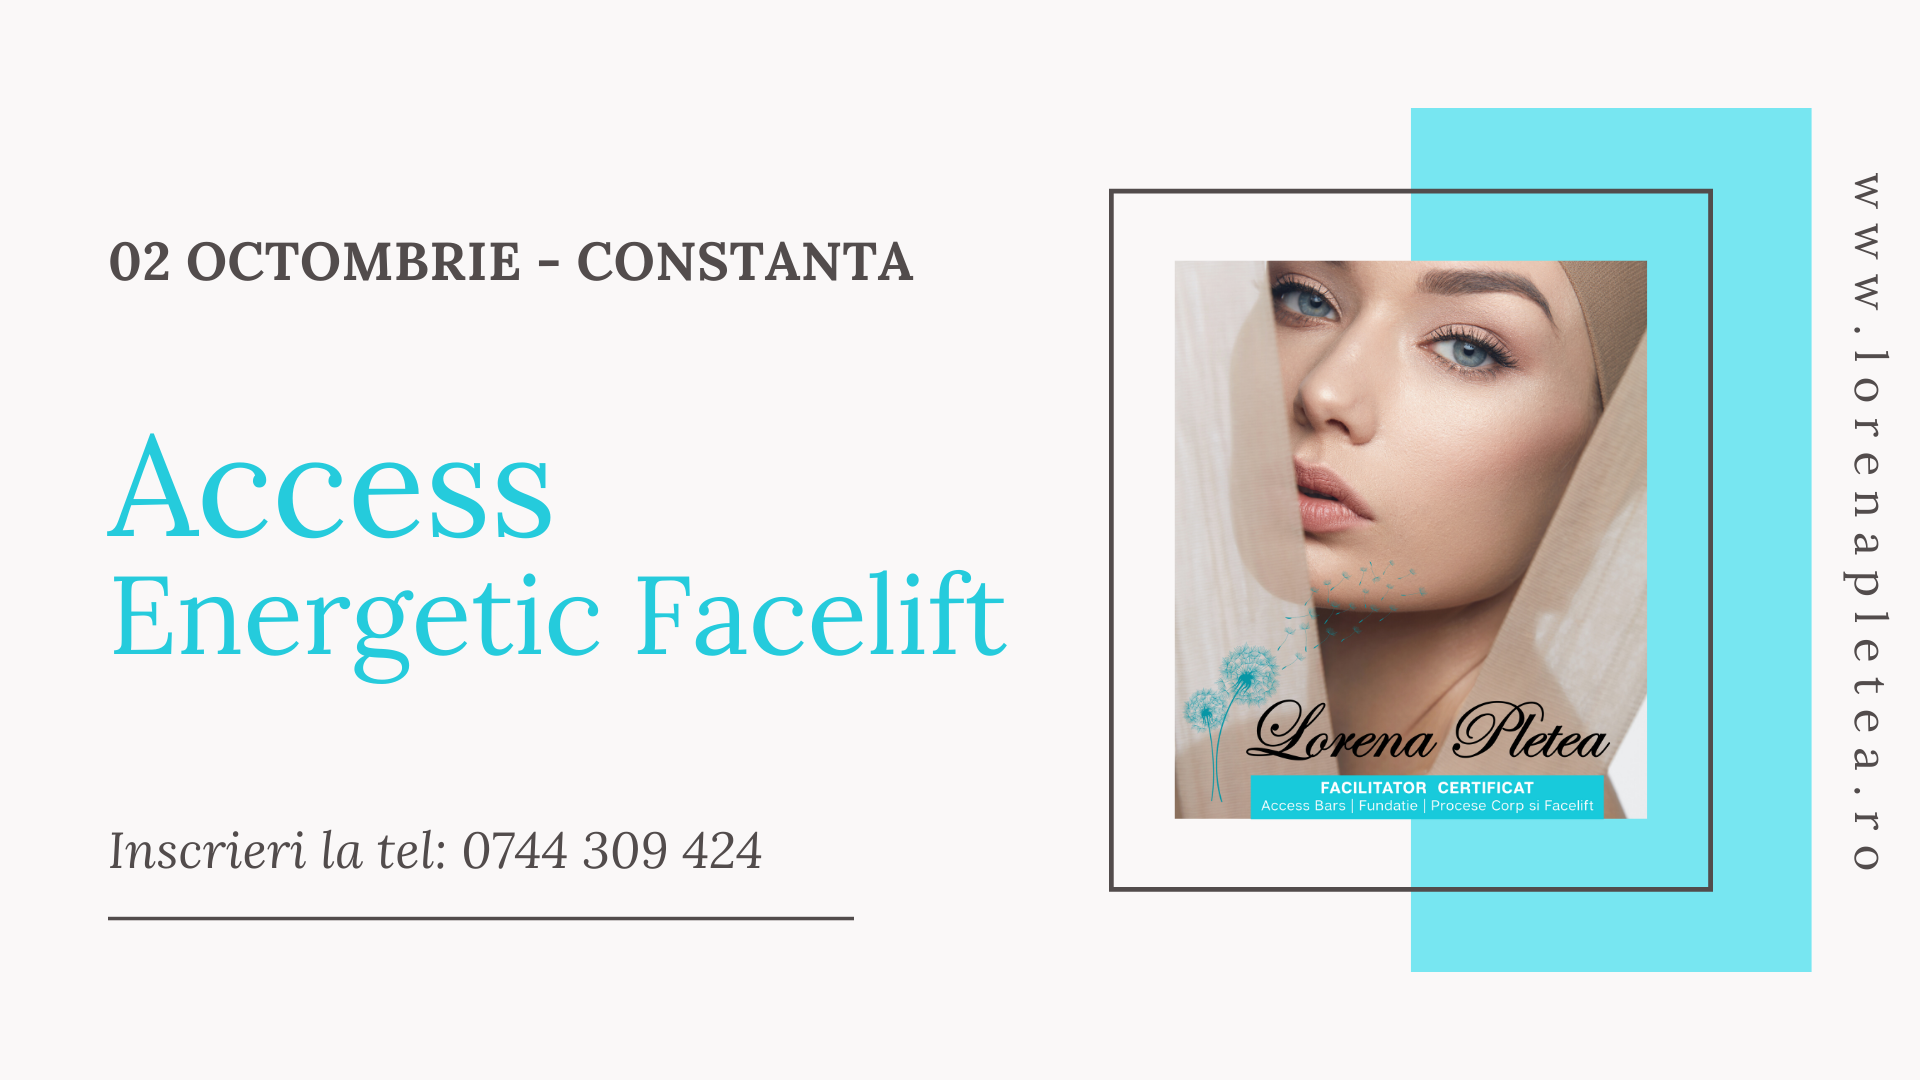 Curs Access Energetic Facelift – 02 Octombrie, Constanta